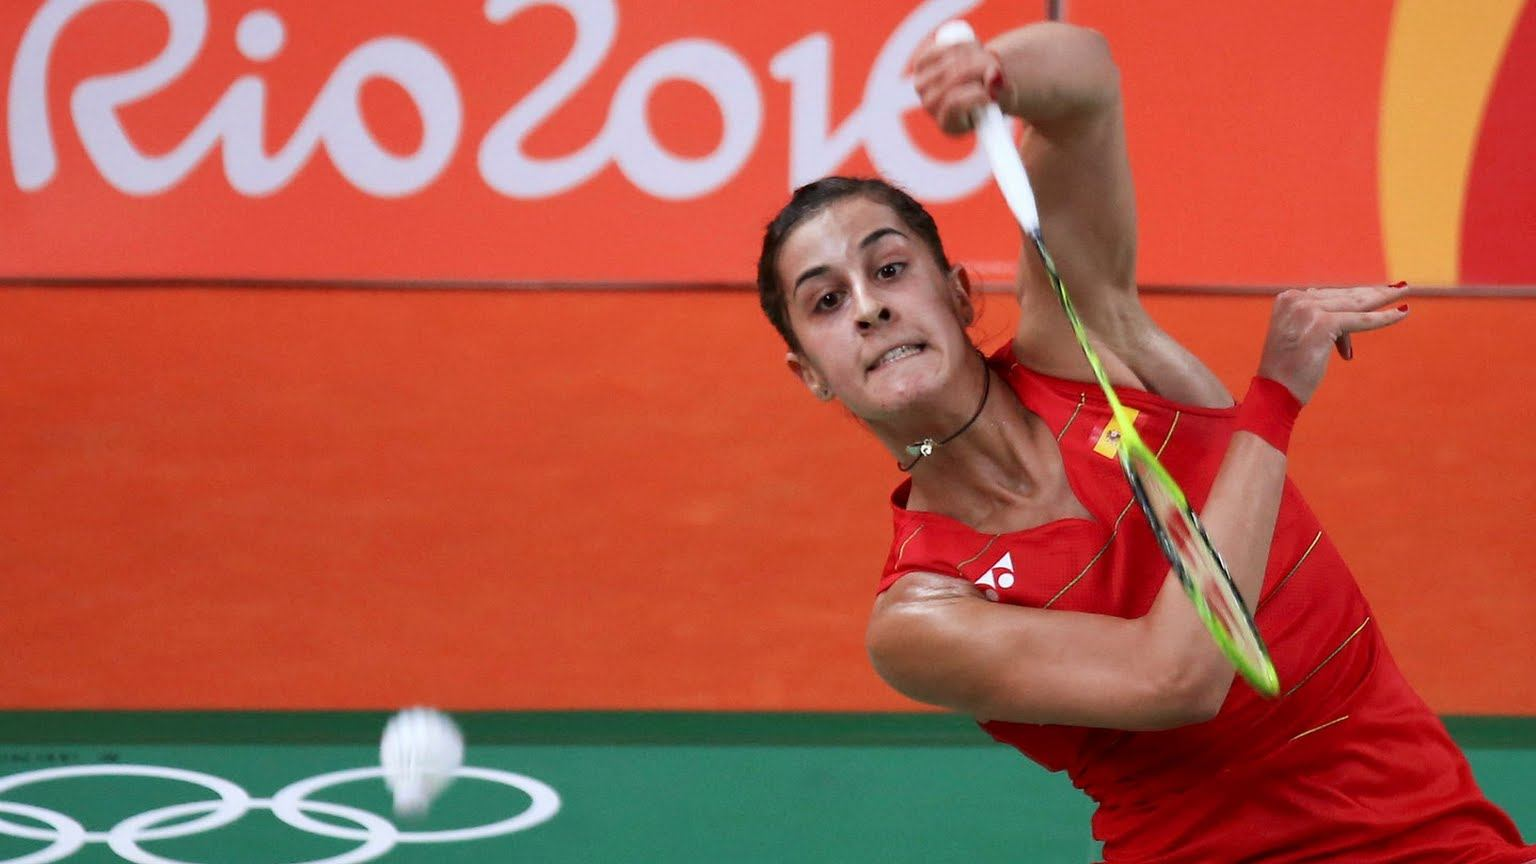 Rio 2016 no 1 women s Badminton champion from Spain